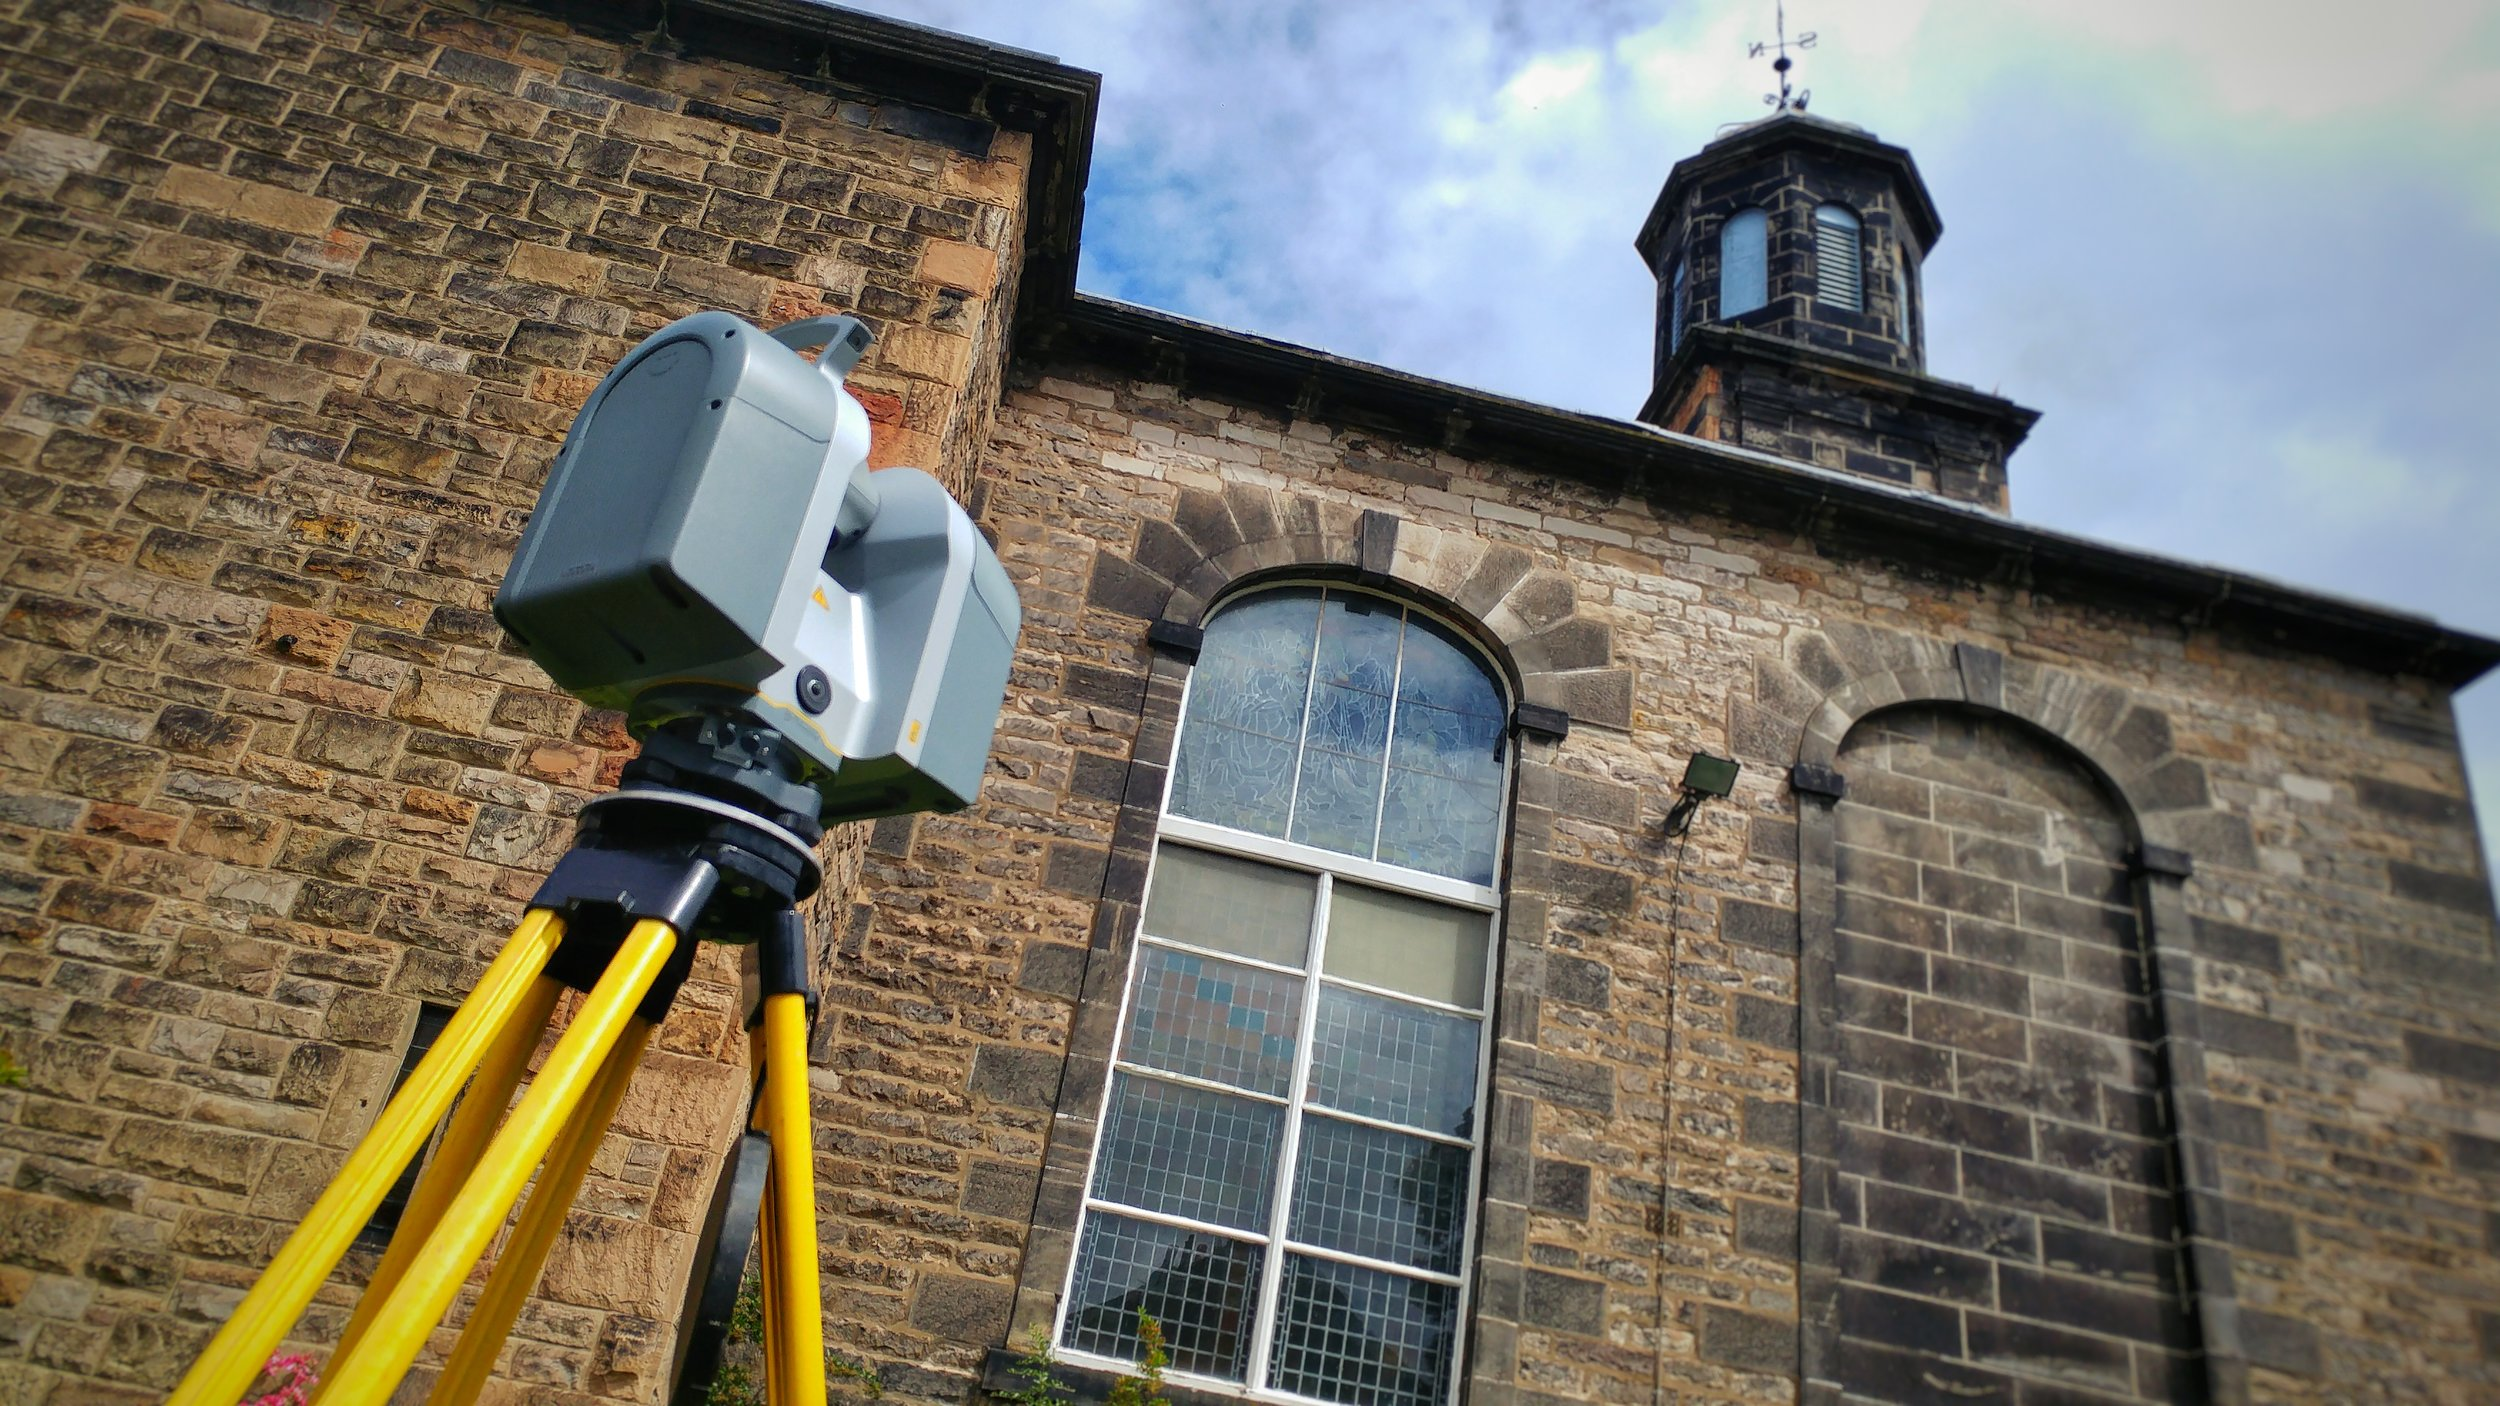 Three floor plans, six elevations, a topographical survey and a roof plan: all delivered ustilising Trimble 3D scanning technology and a drone.